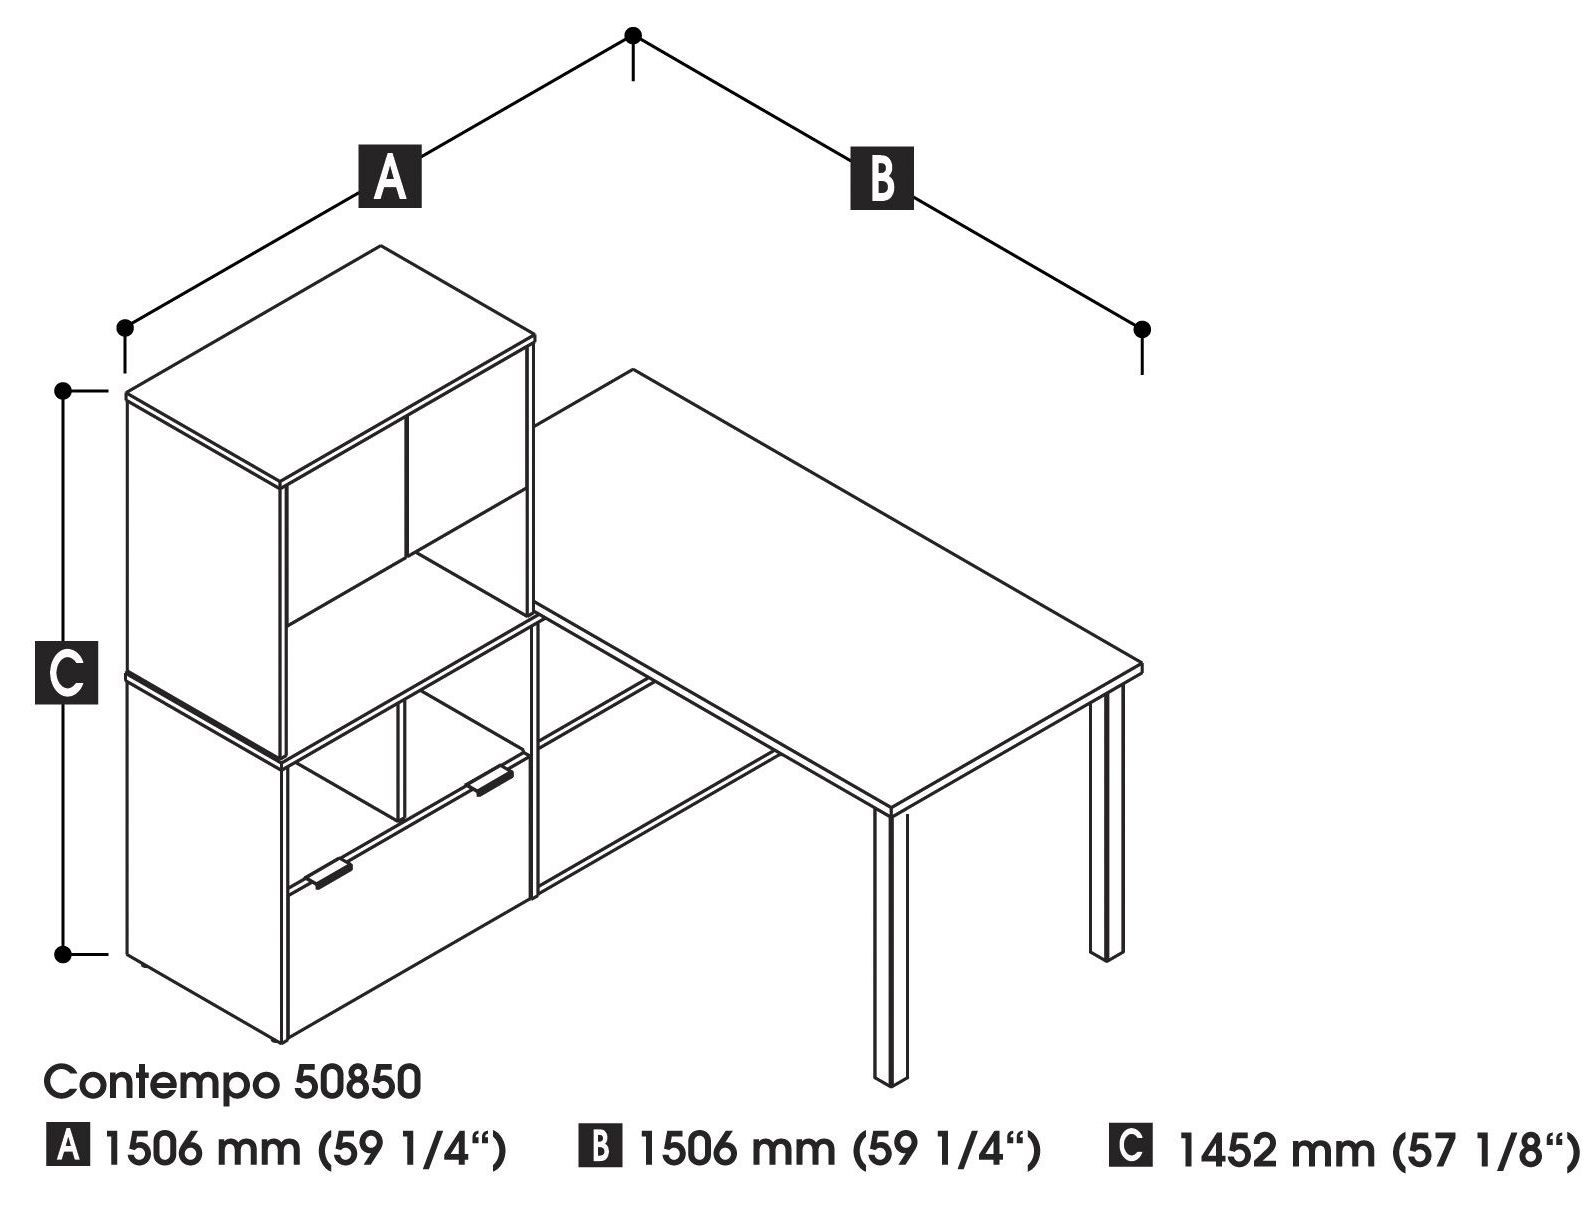 Office Desk Dimensions also 313422455298394984 also Ikea Small House Floor Plans in addition A Guide To A Feng Shui Positive Desk additionally Medical Office Layout Plan. on l shaped home office desk